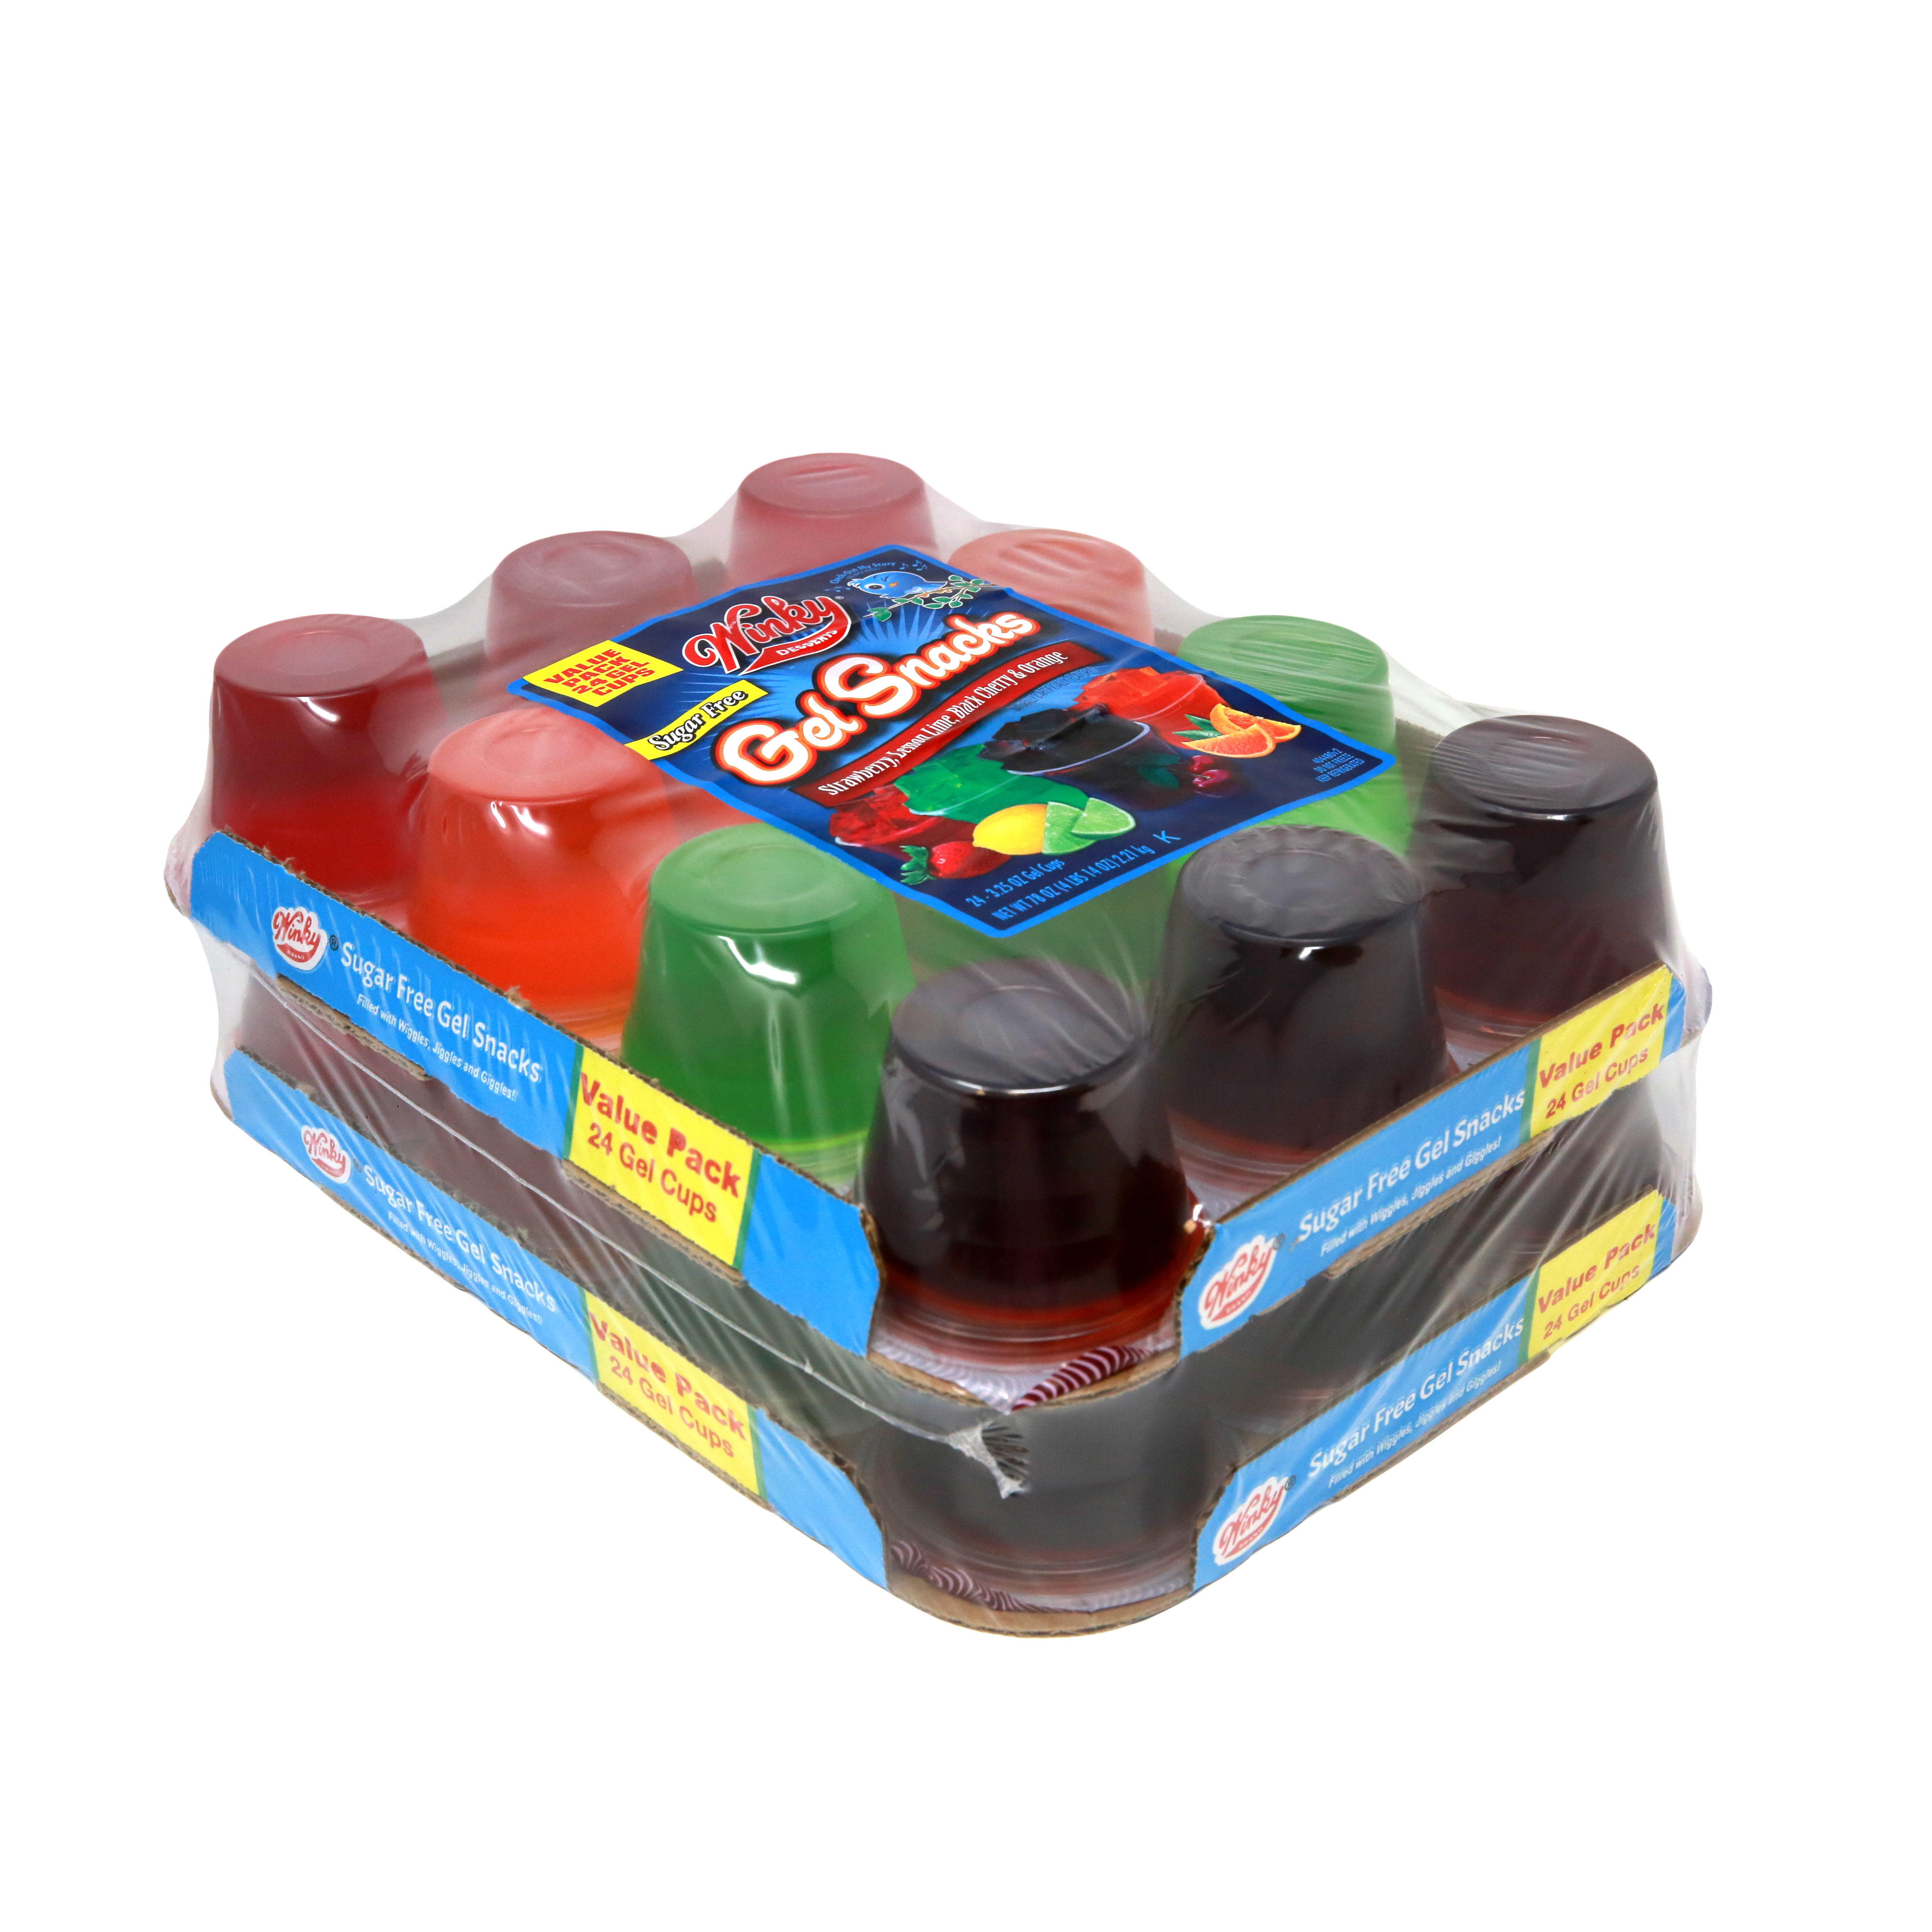 25+ Sugar Free Jello Cups Nutrition Facts Background